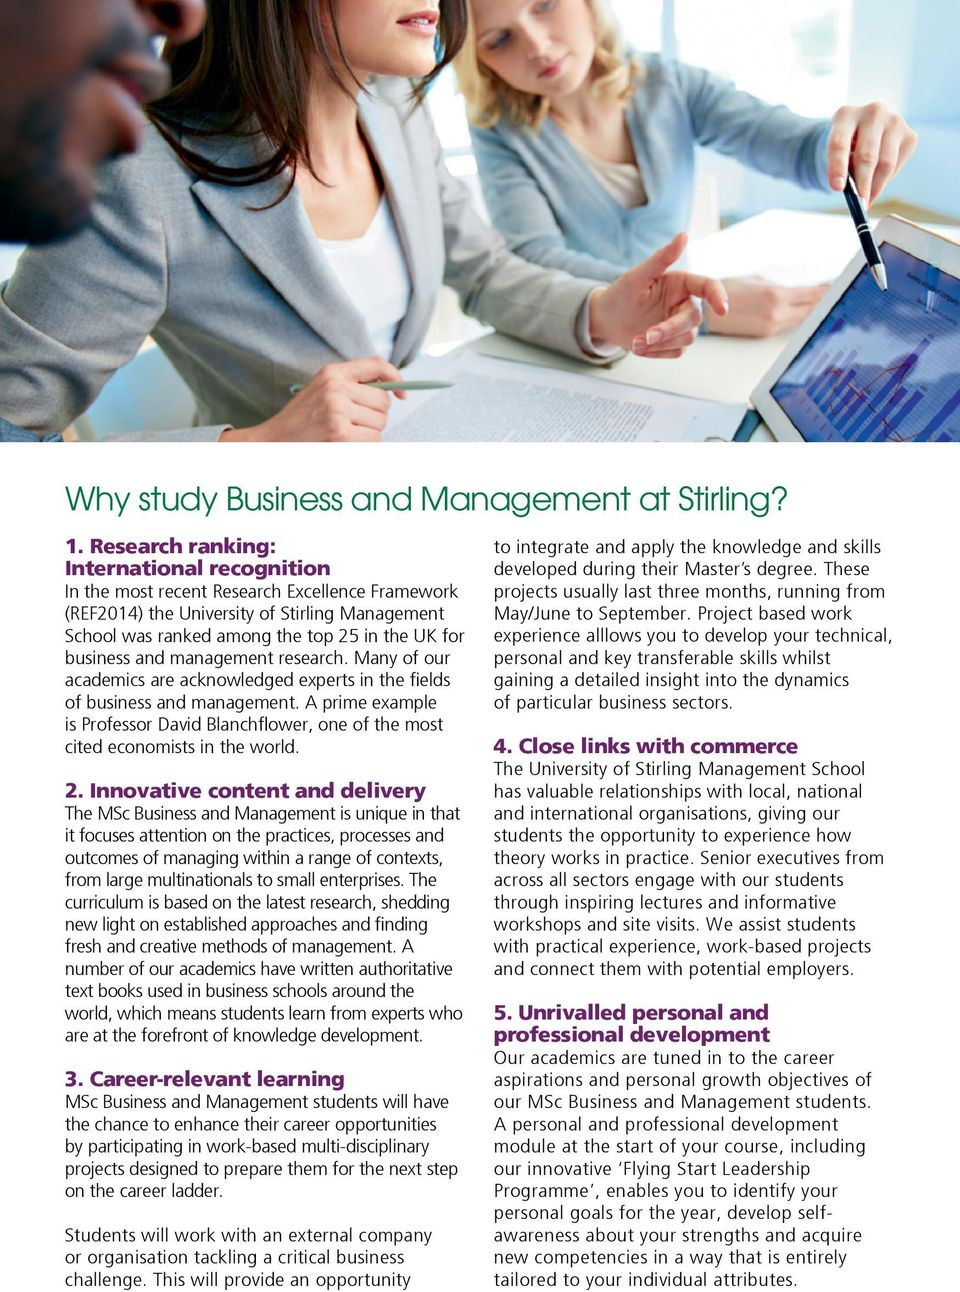 and management research. Many of our academics are acknowledged experts in the fields of business and management.